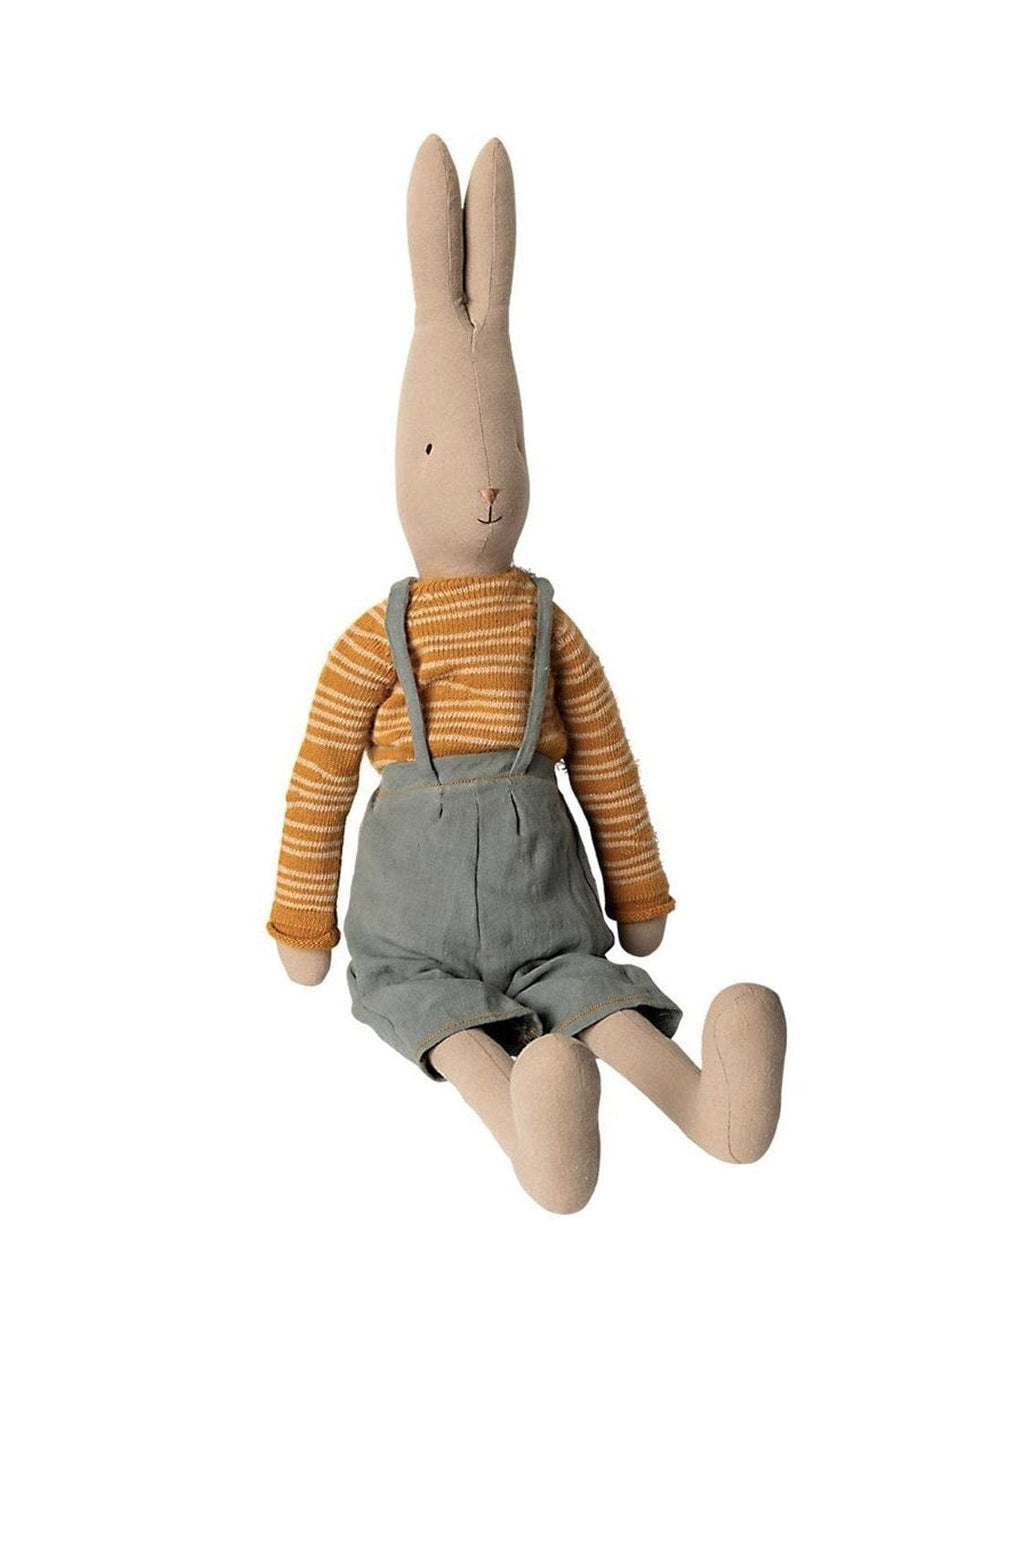 Maileg Rabbit with Overalls 67cm - Hello Little Birdie